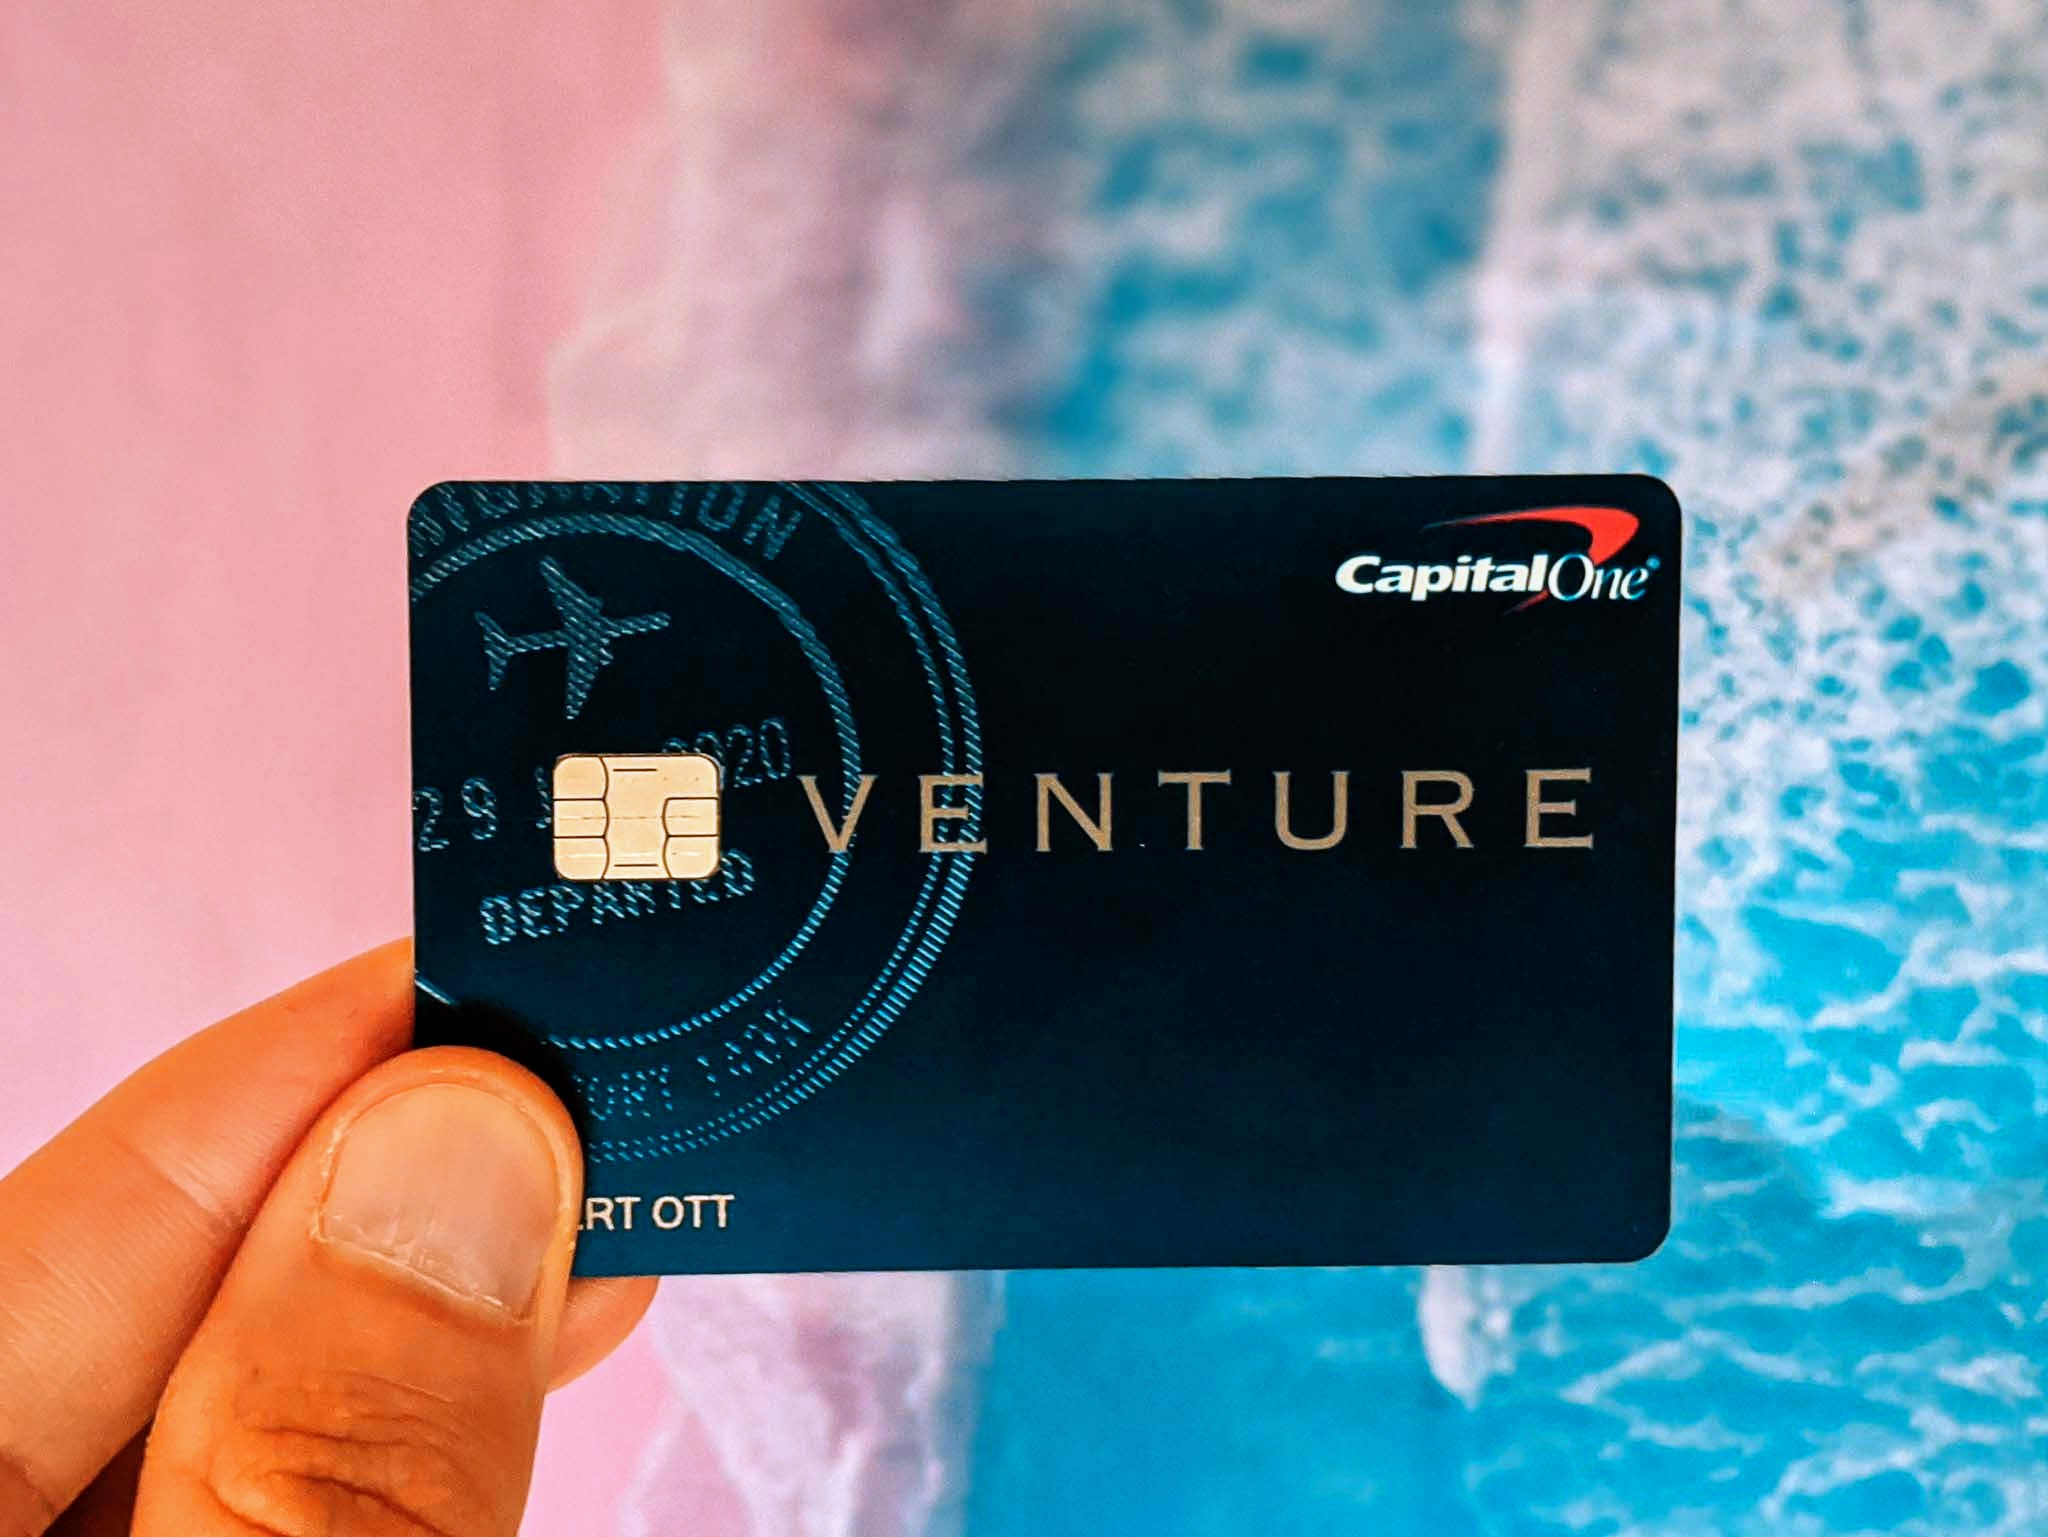 9,9 Point Capital One Venture Bonus Ends July 9th (And Why Now)